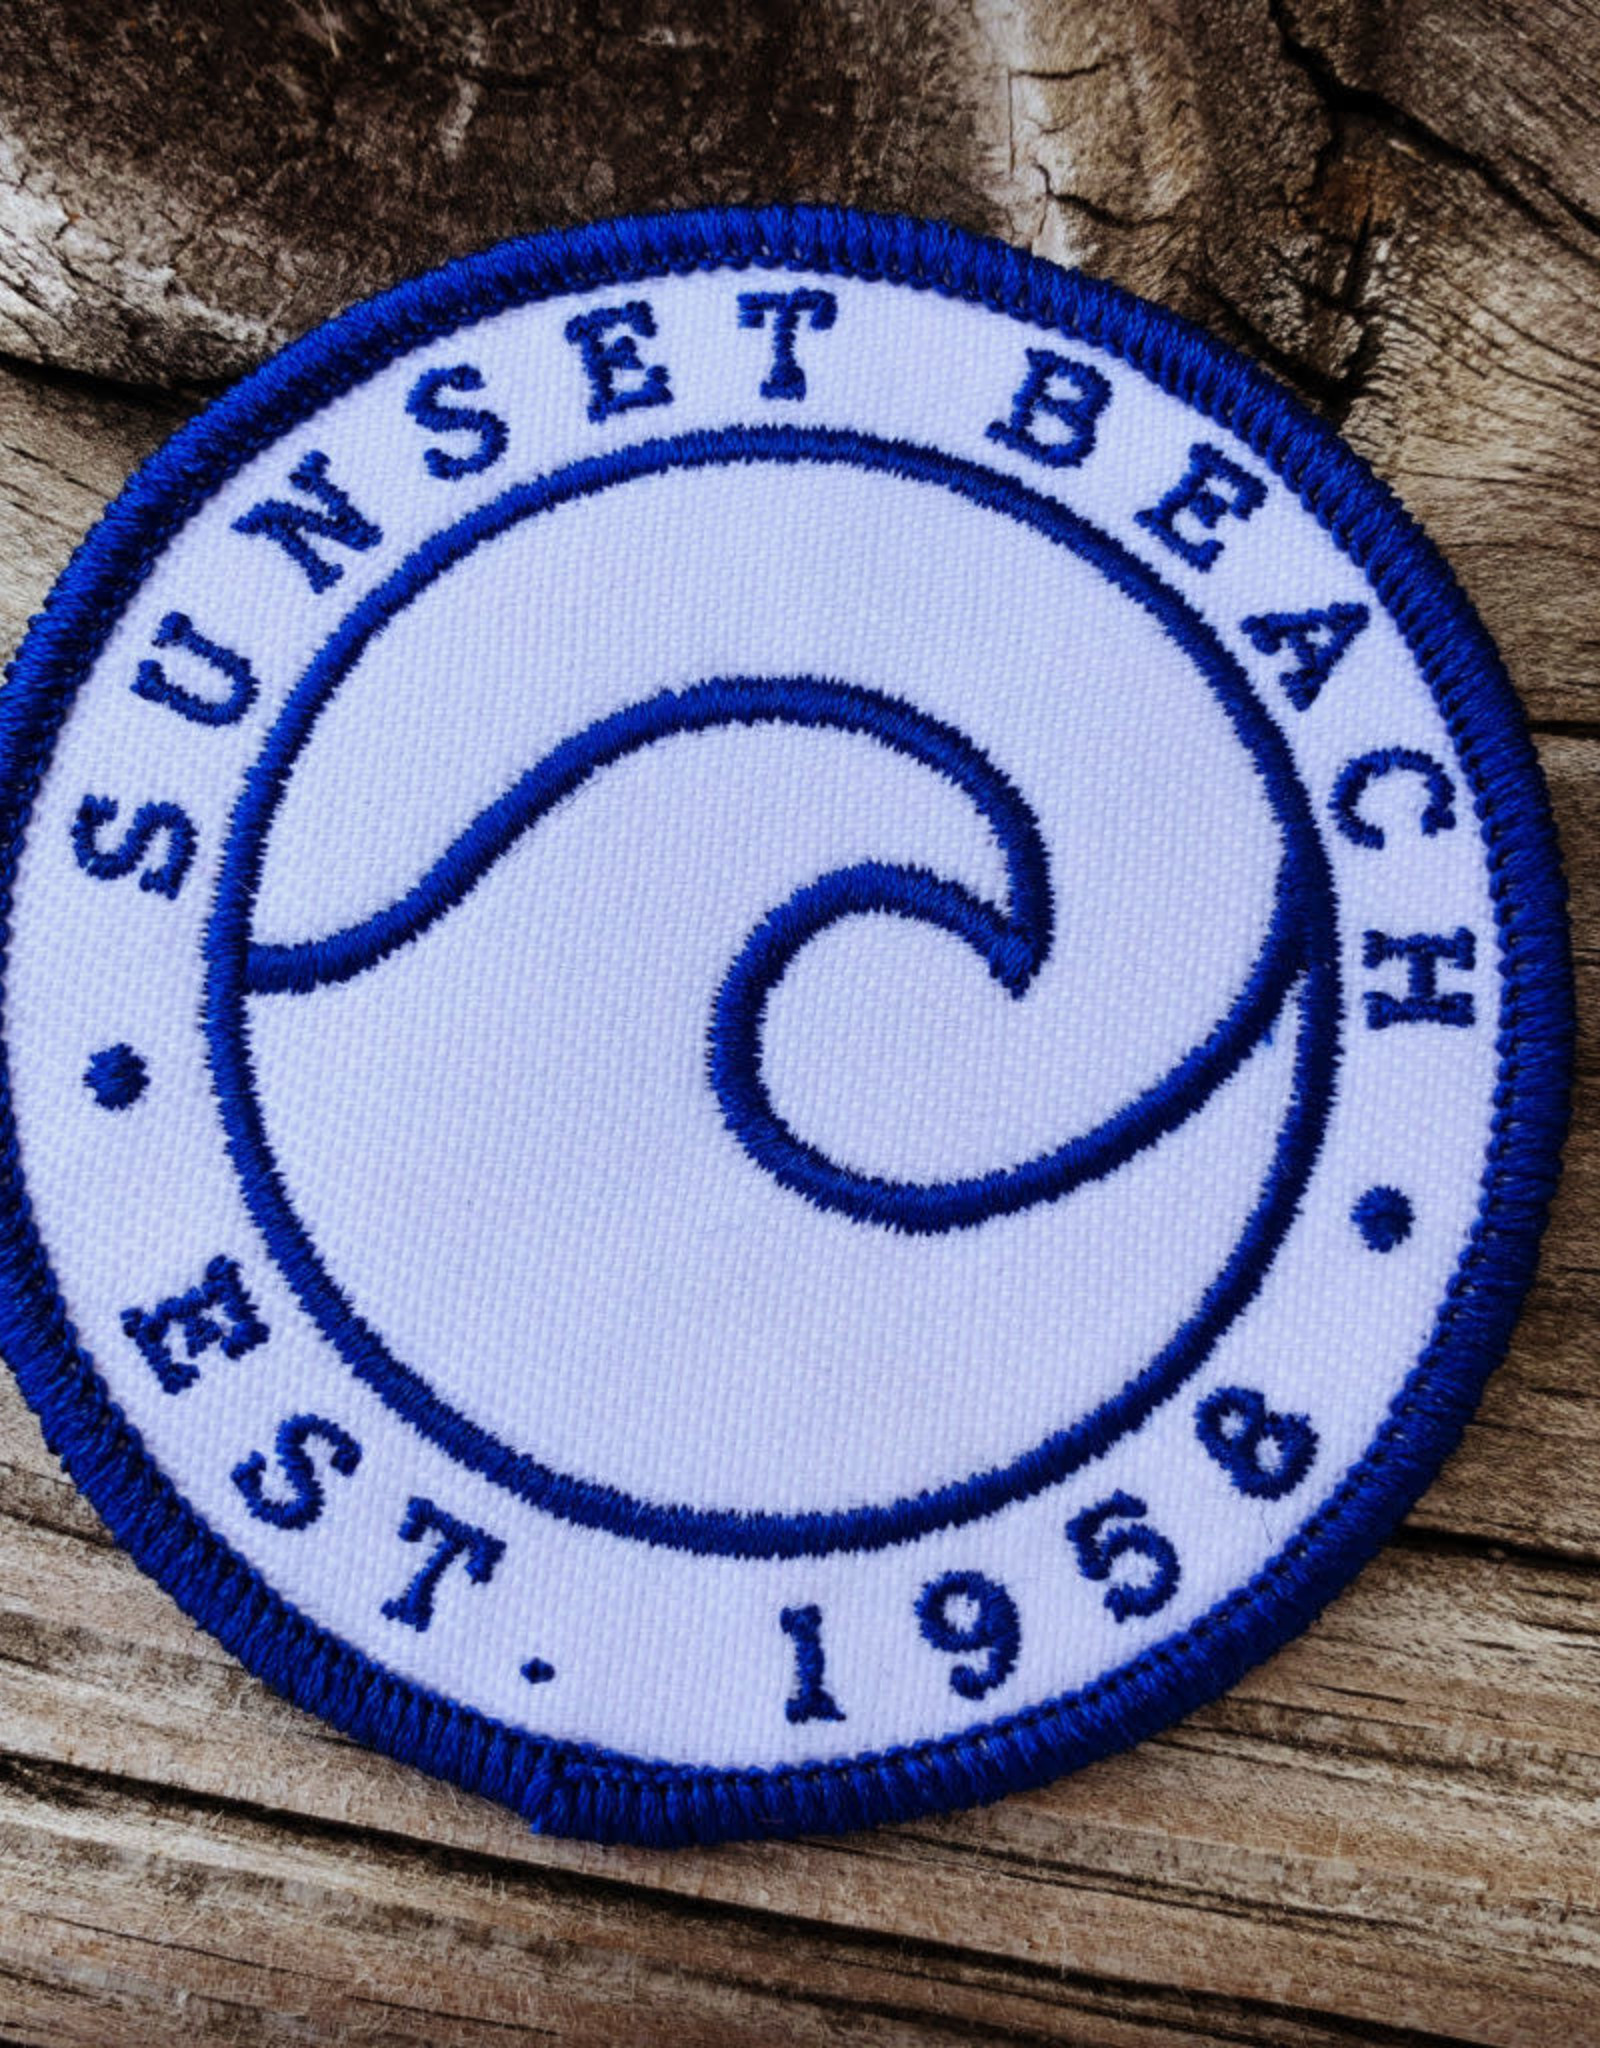 SB SURF CIRCLE PATCH